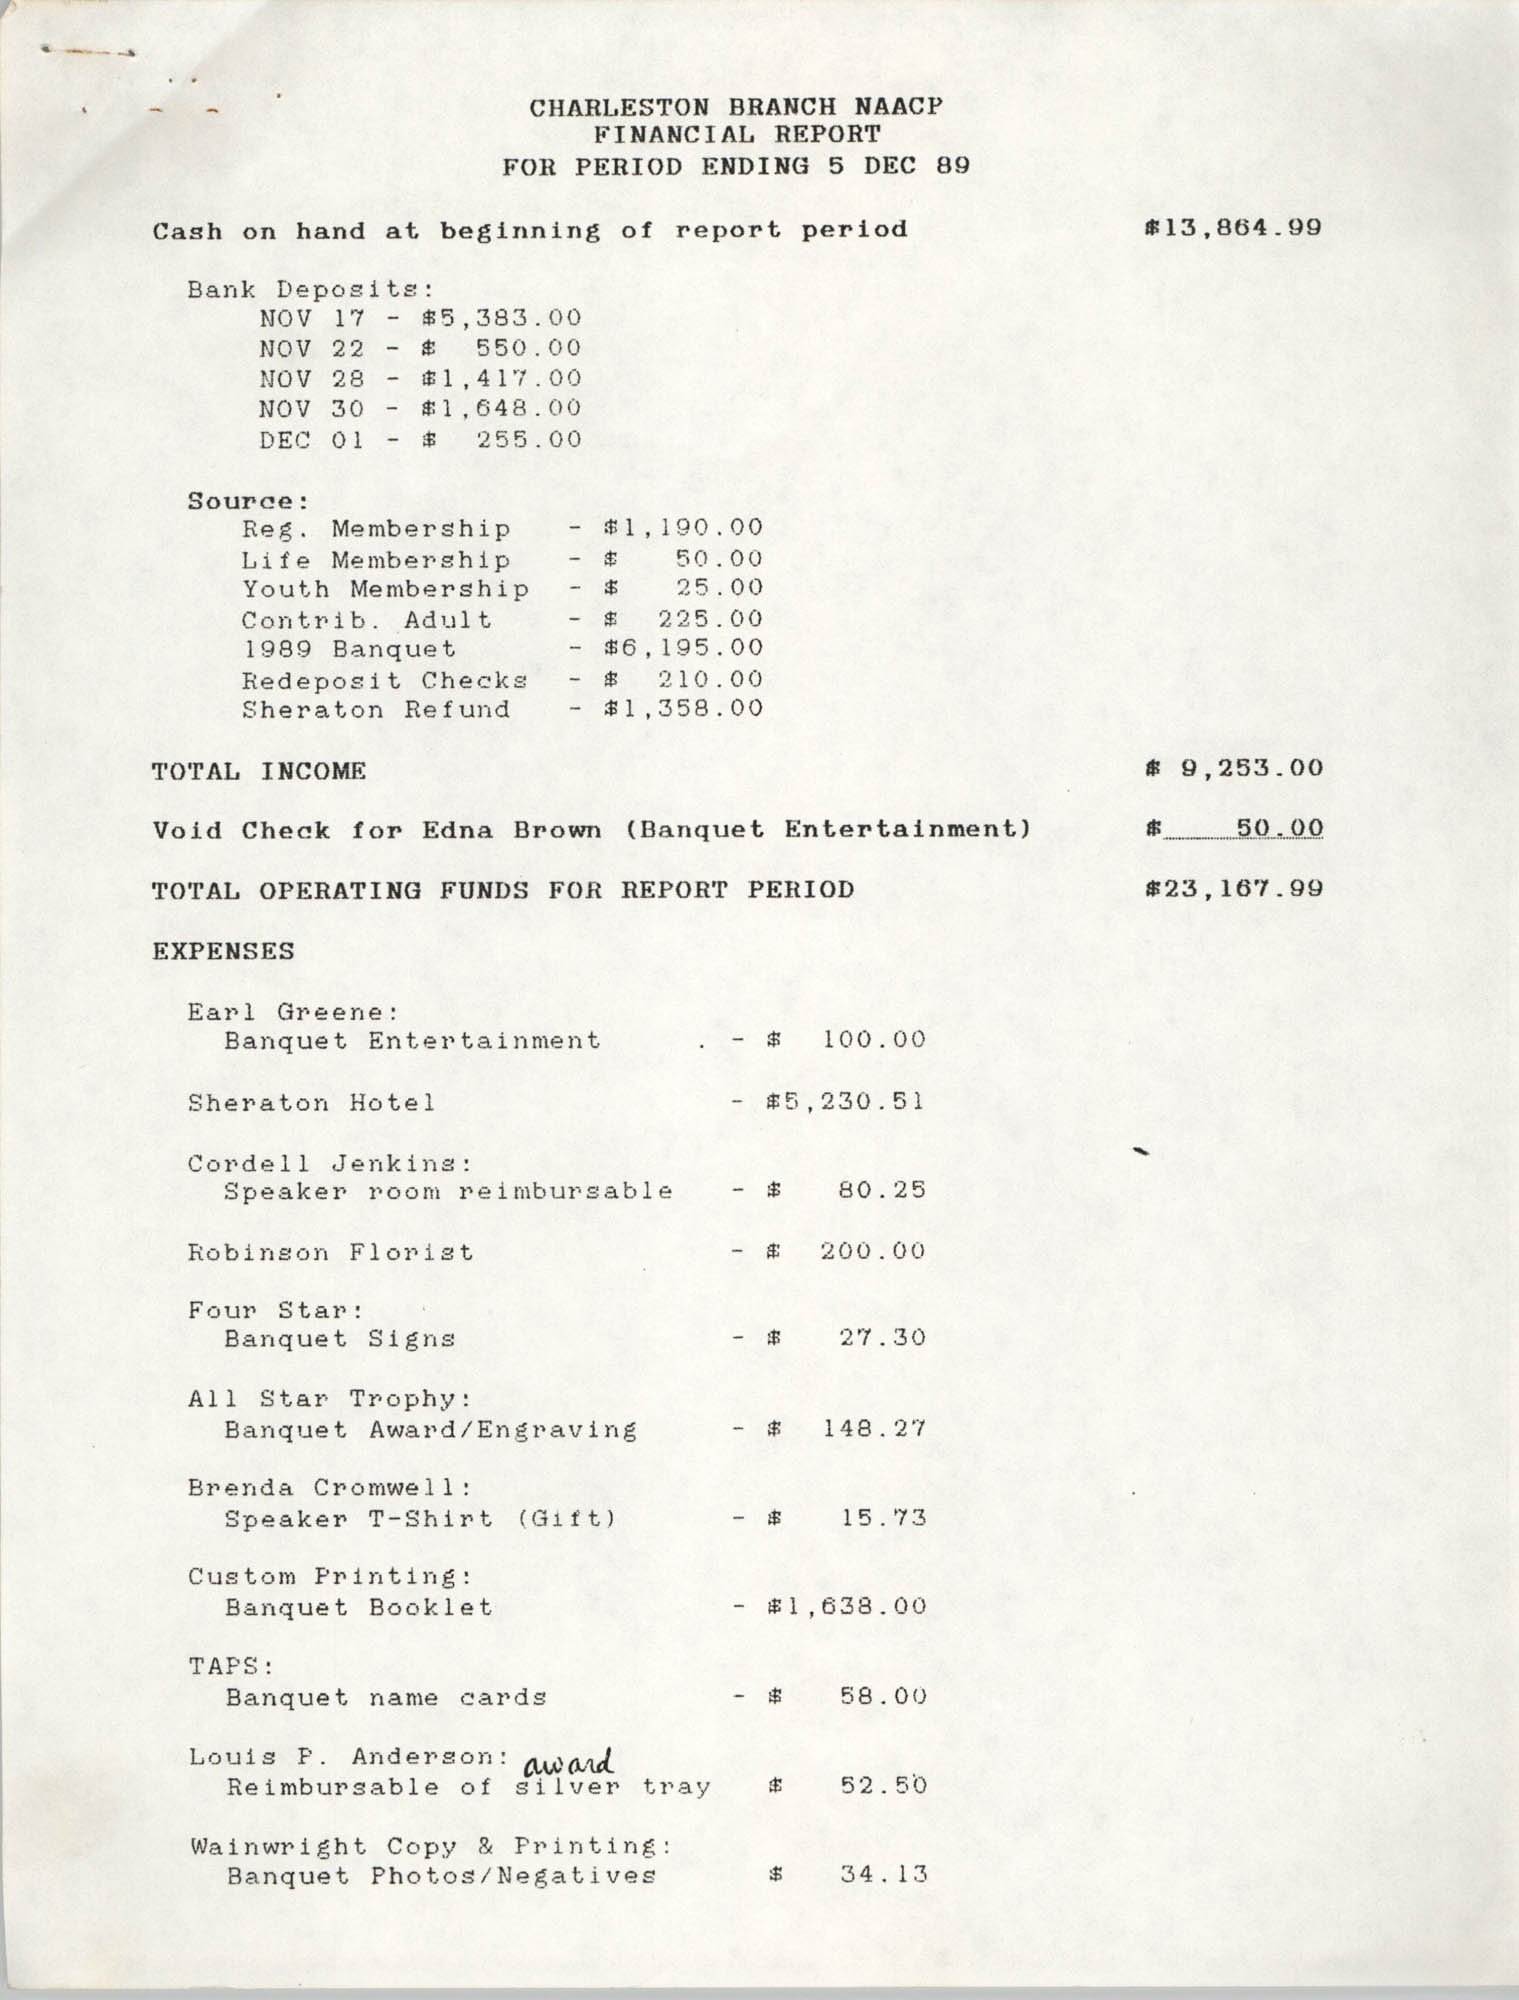 Charleston Branch of the NAACP Financial Report for Period Ending December 5, 1989